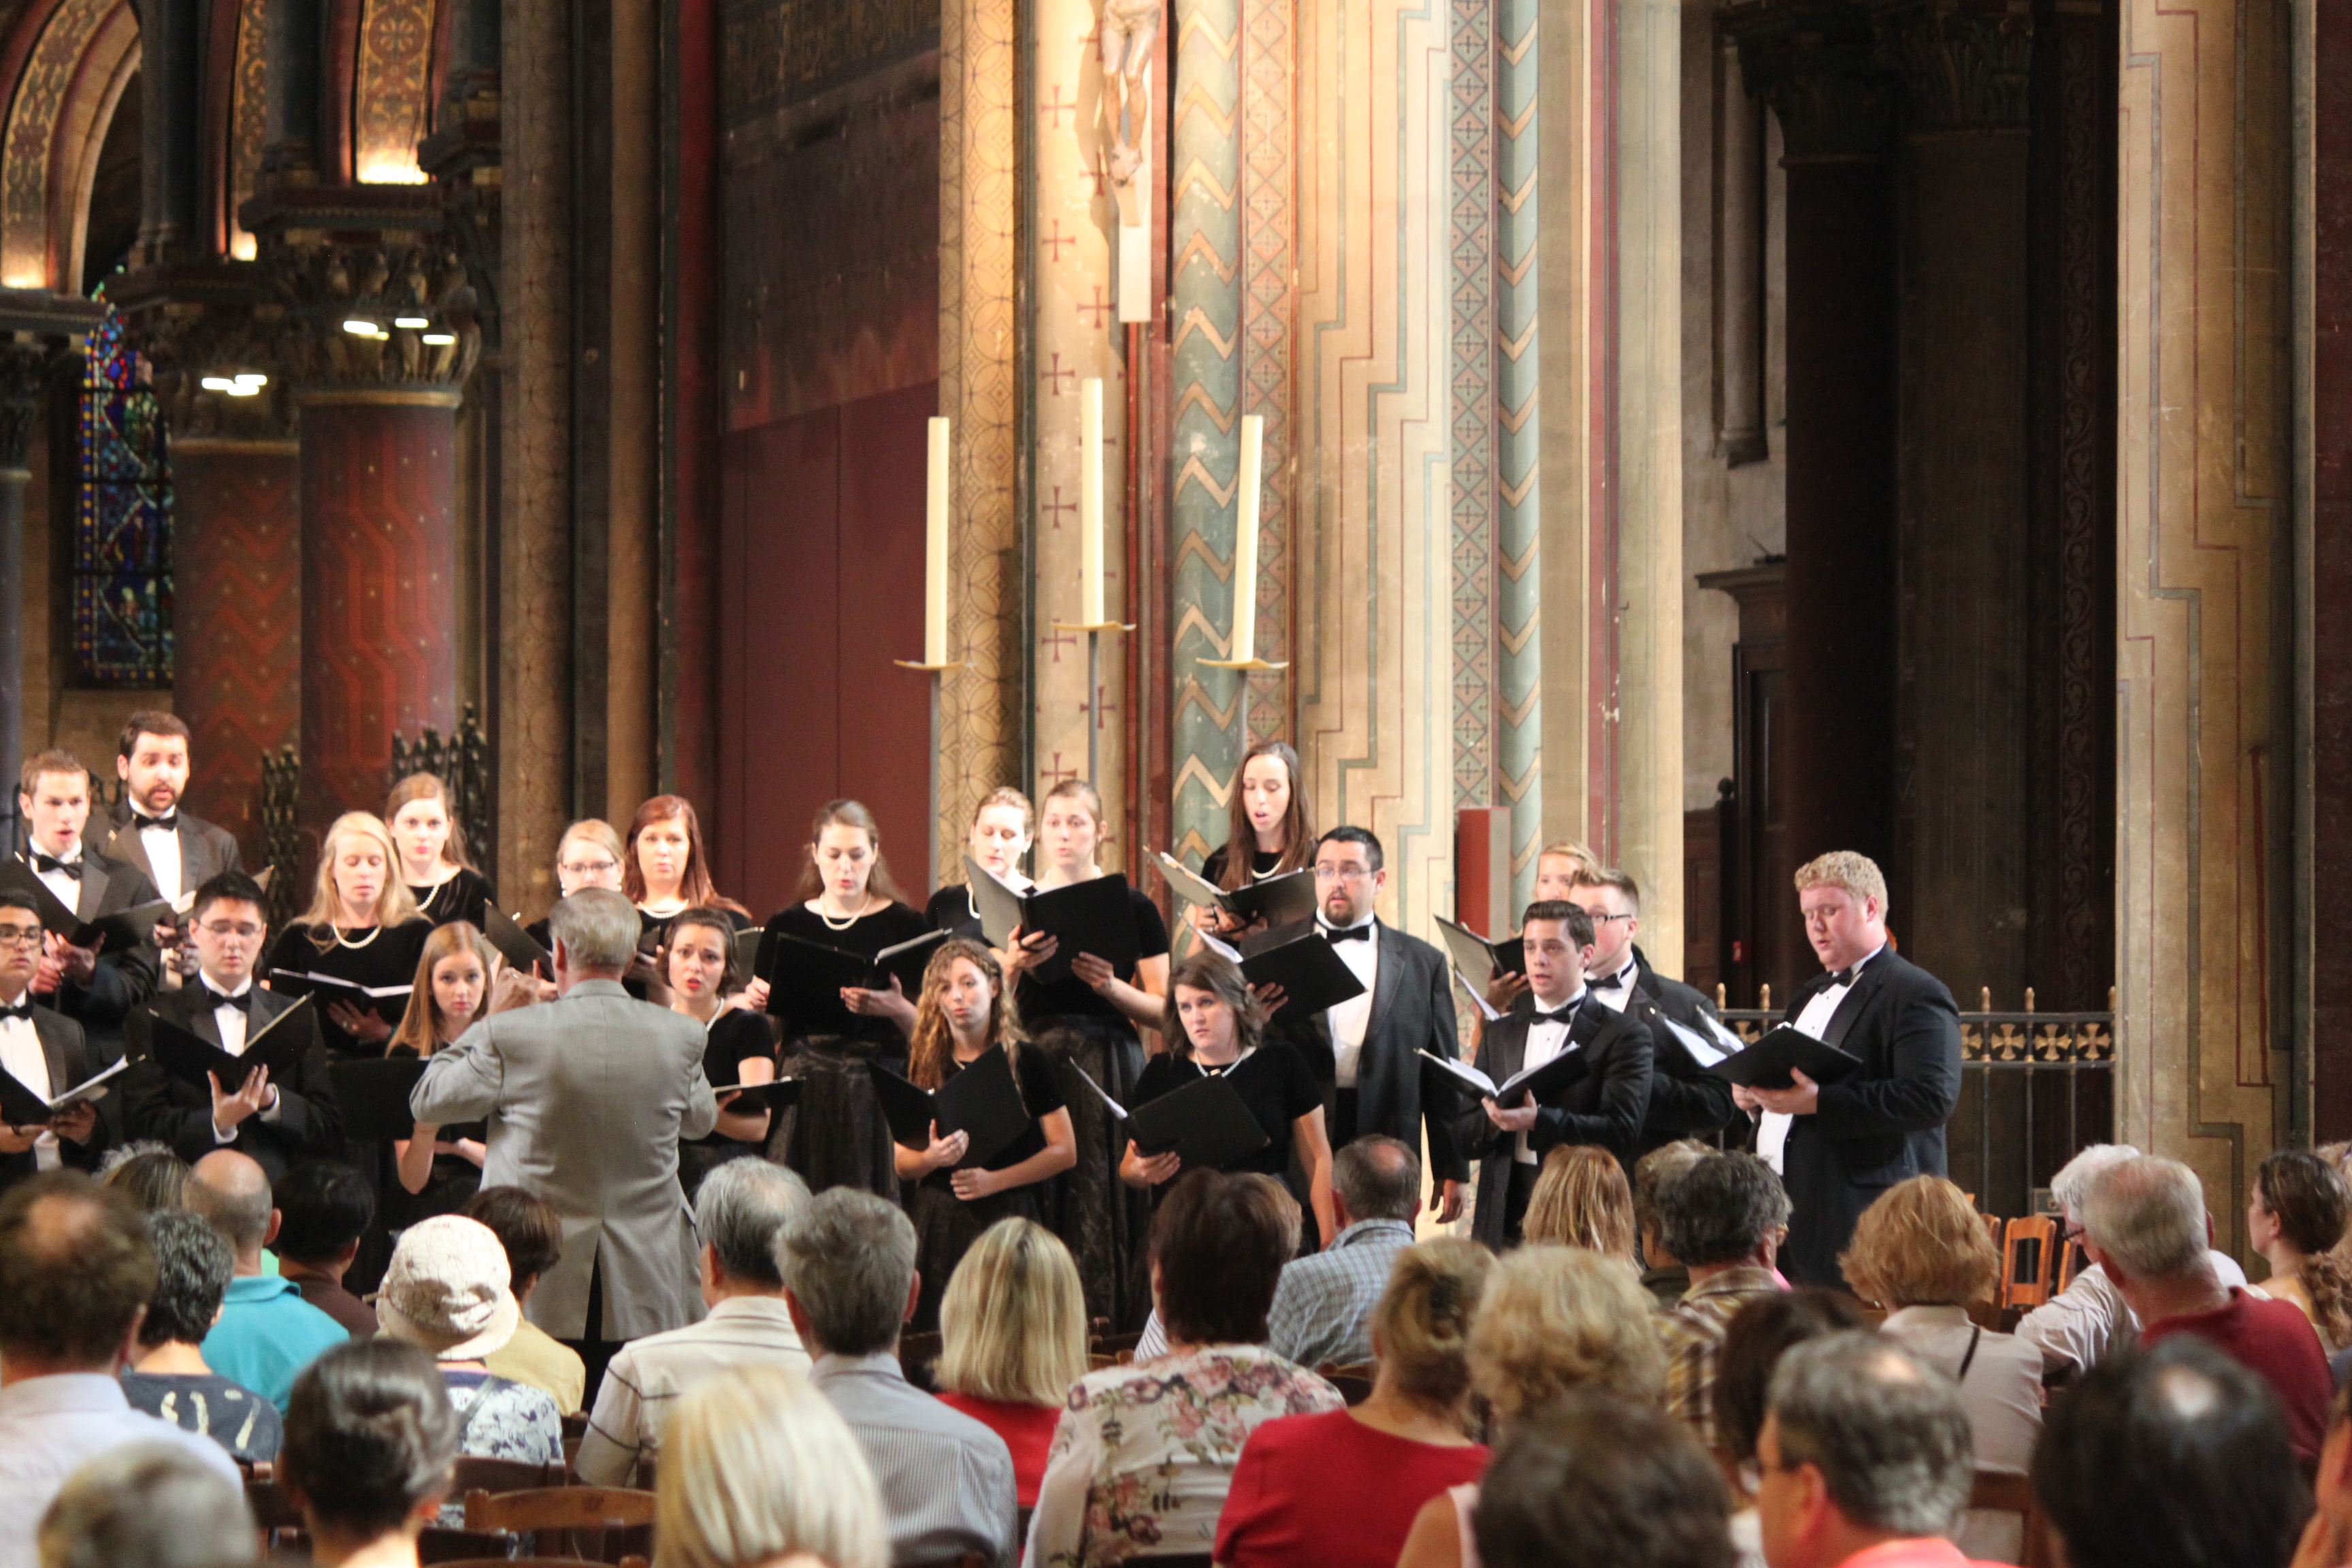 Oklahoma Oklahoma State University Concert Chorale performance at St-Germain-des-Prés in Paris, France (2013)